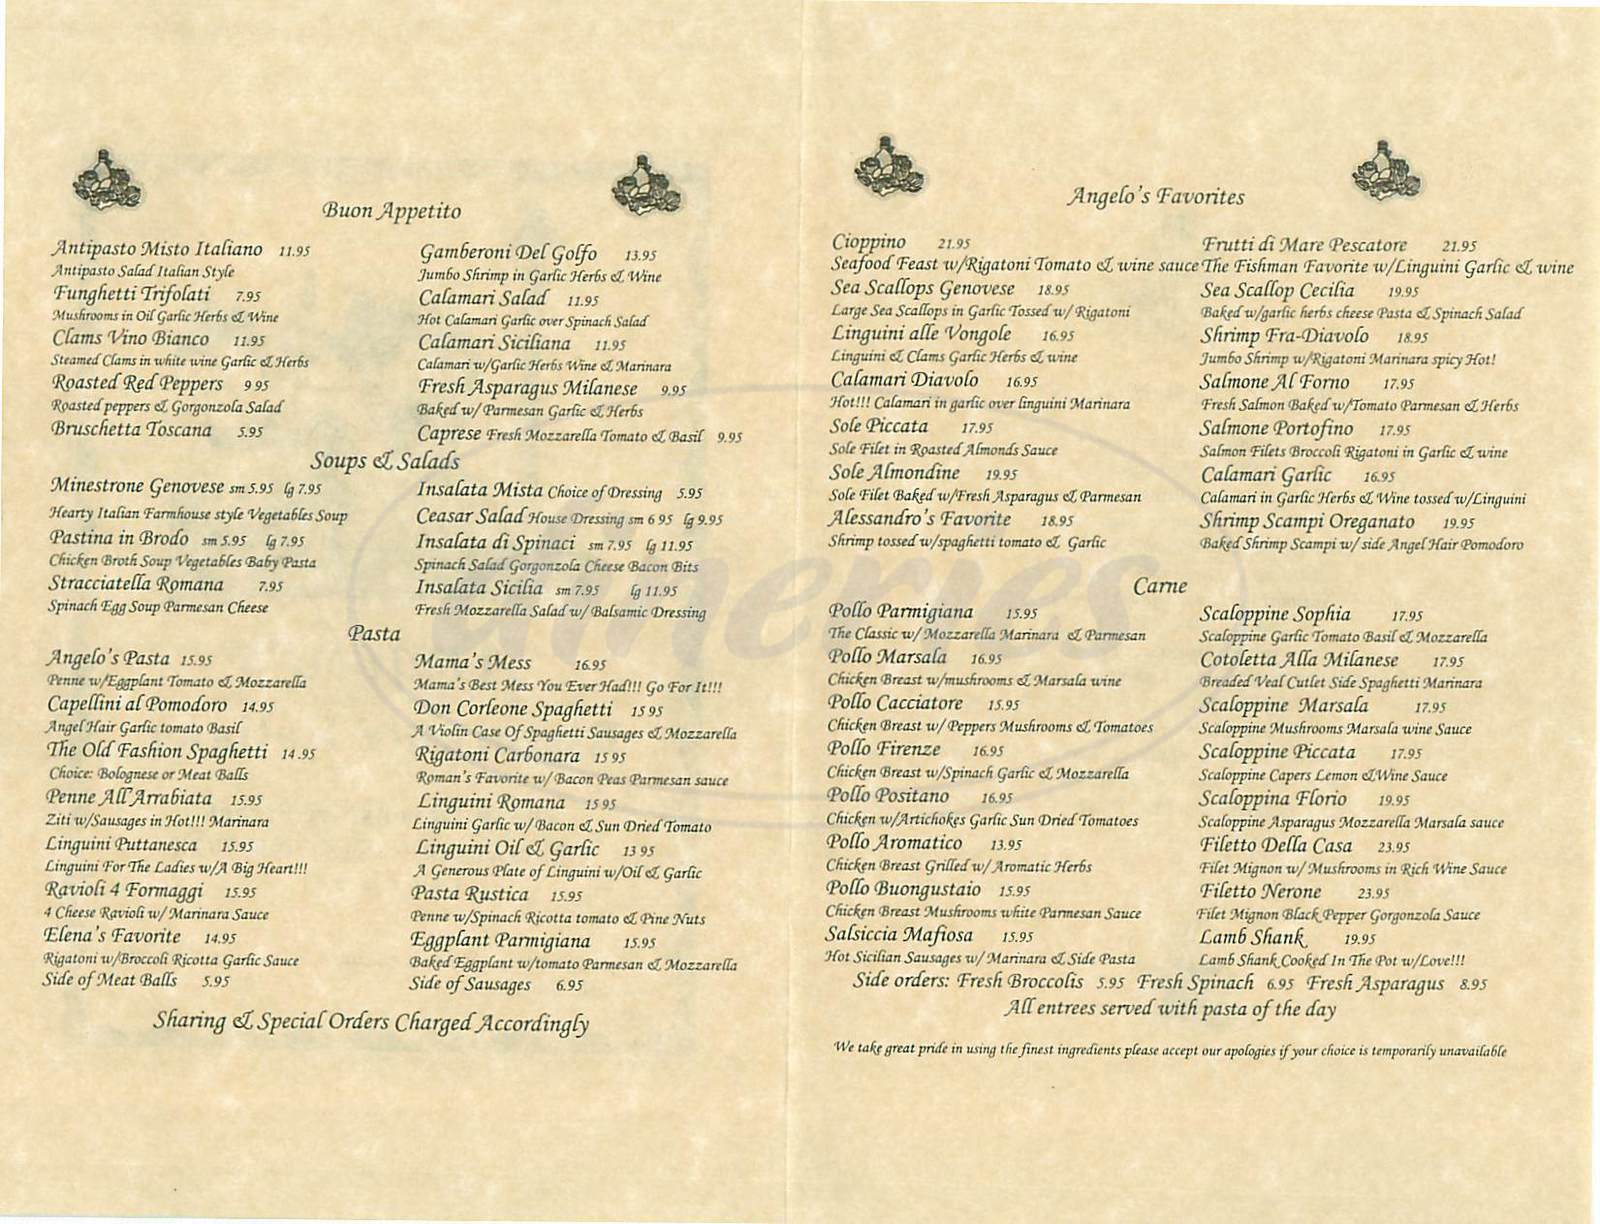 menu for Angelos Ristorante Italiano